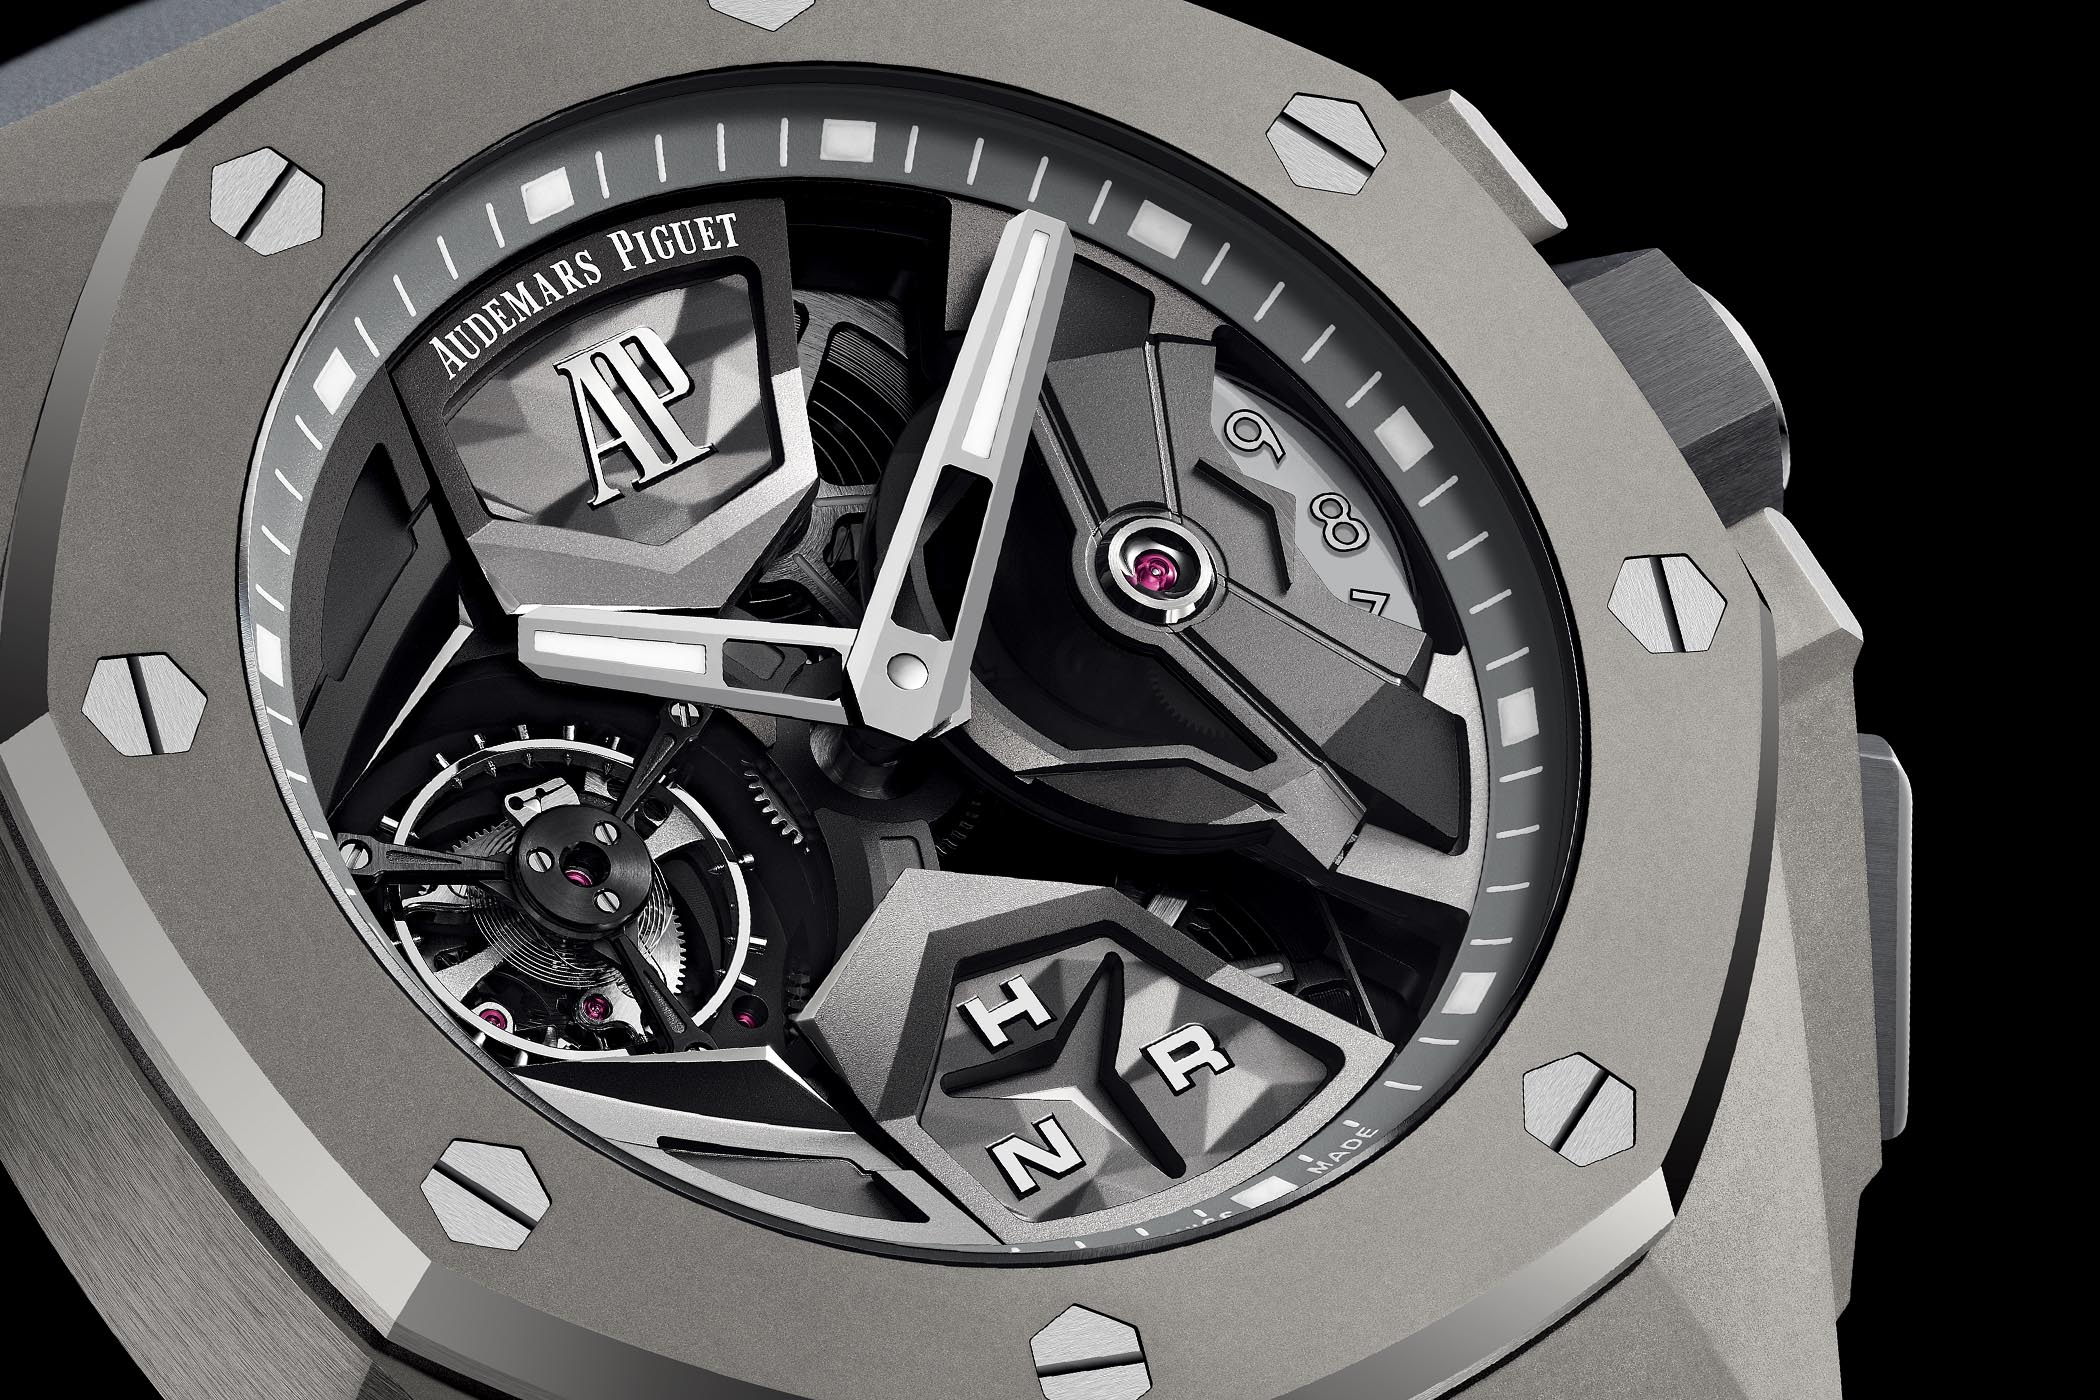 Audemars Piguet Royal Oak Concept Flying Tourbillon GMT - 26589TI